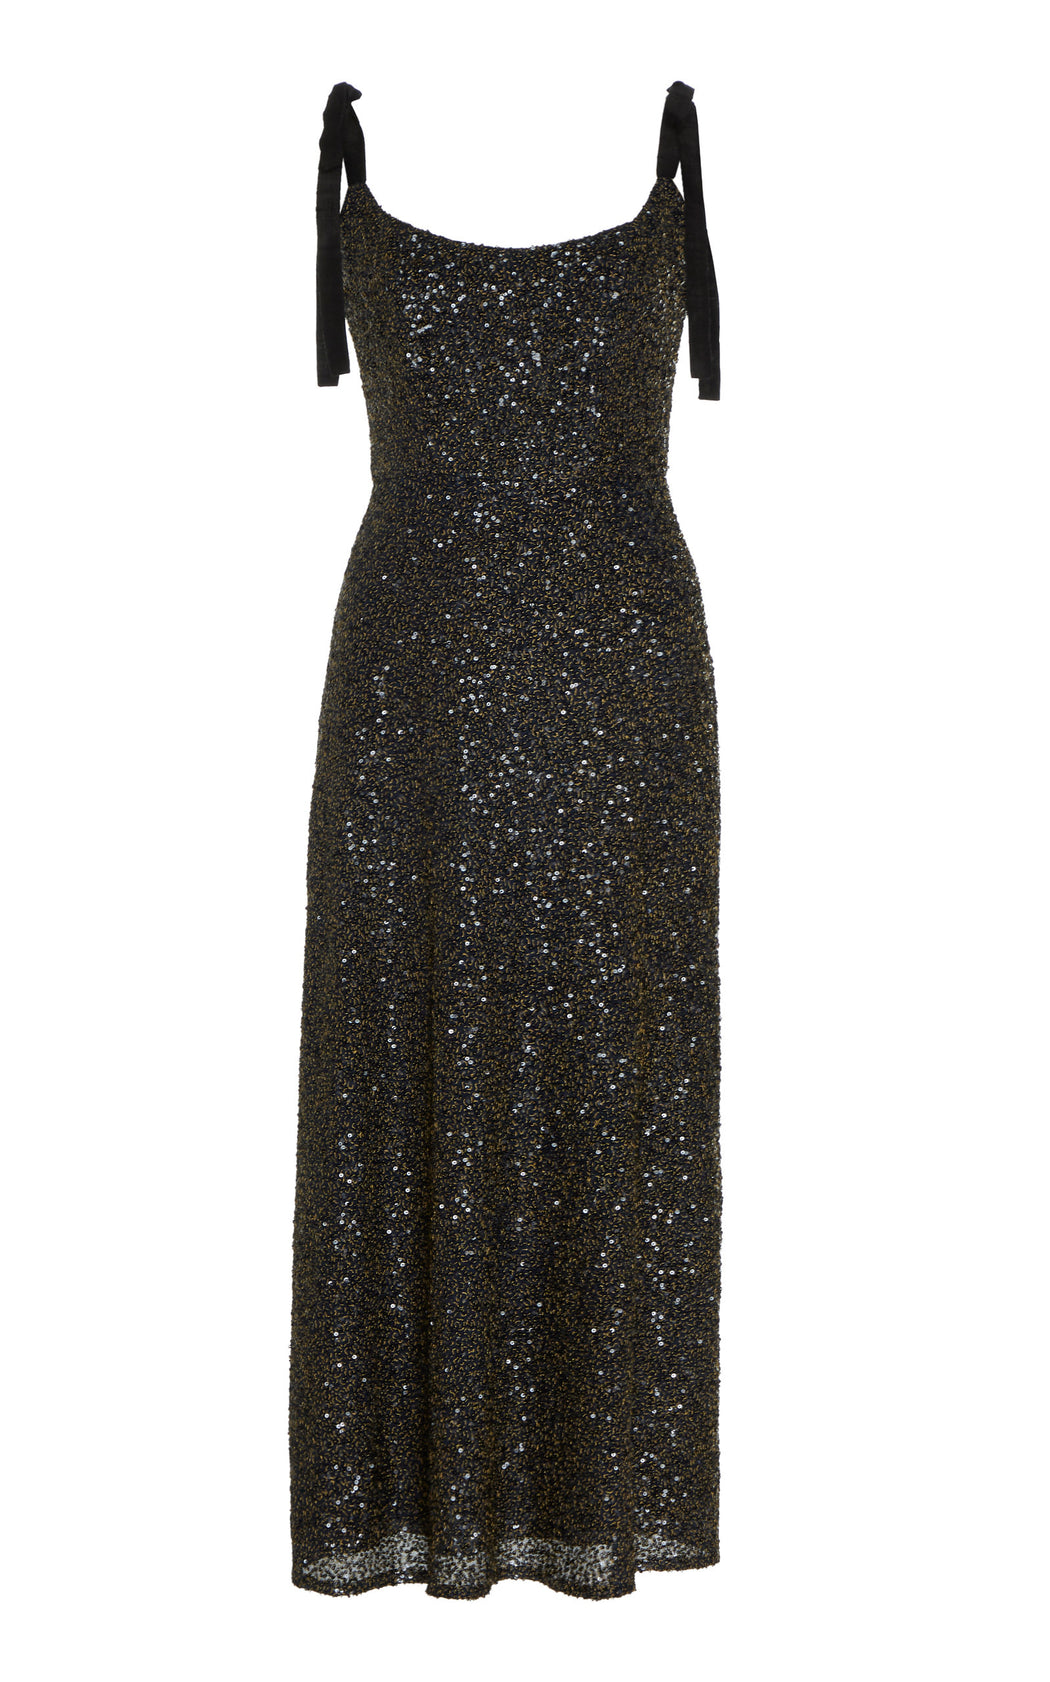 Veronica Black Sequined Silk Chiffon Midi Dress